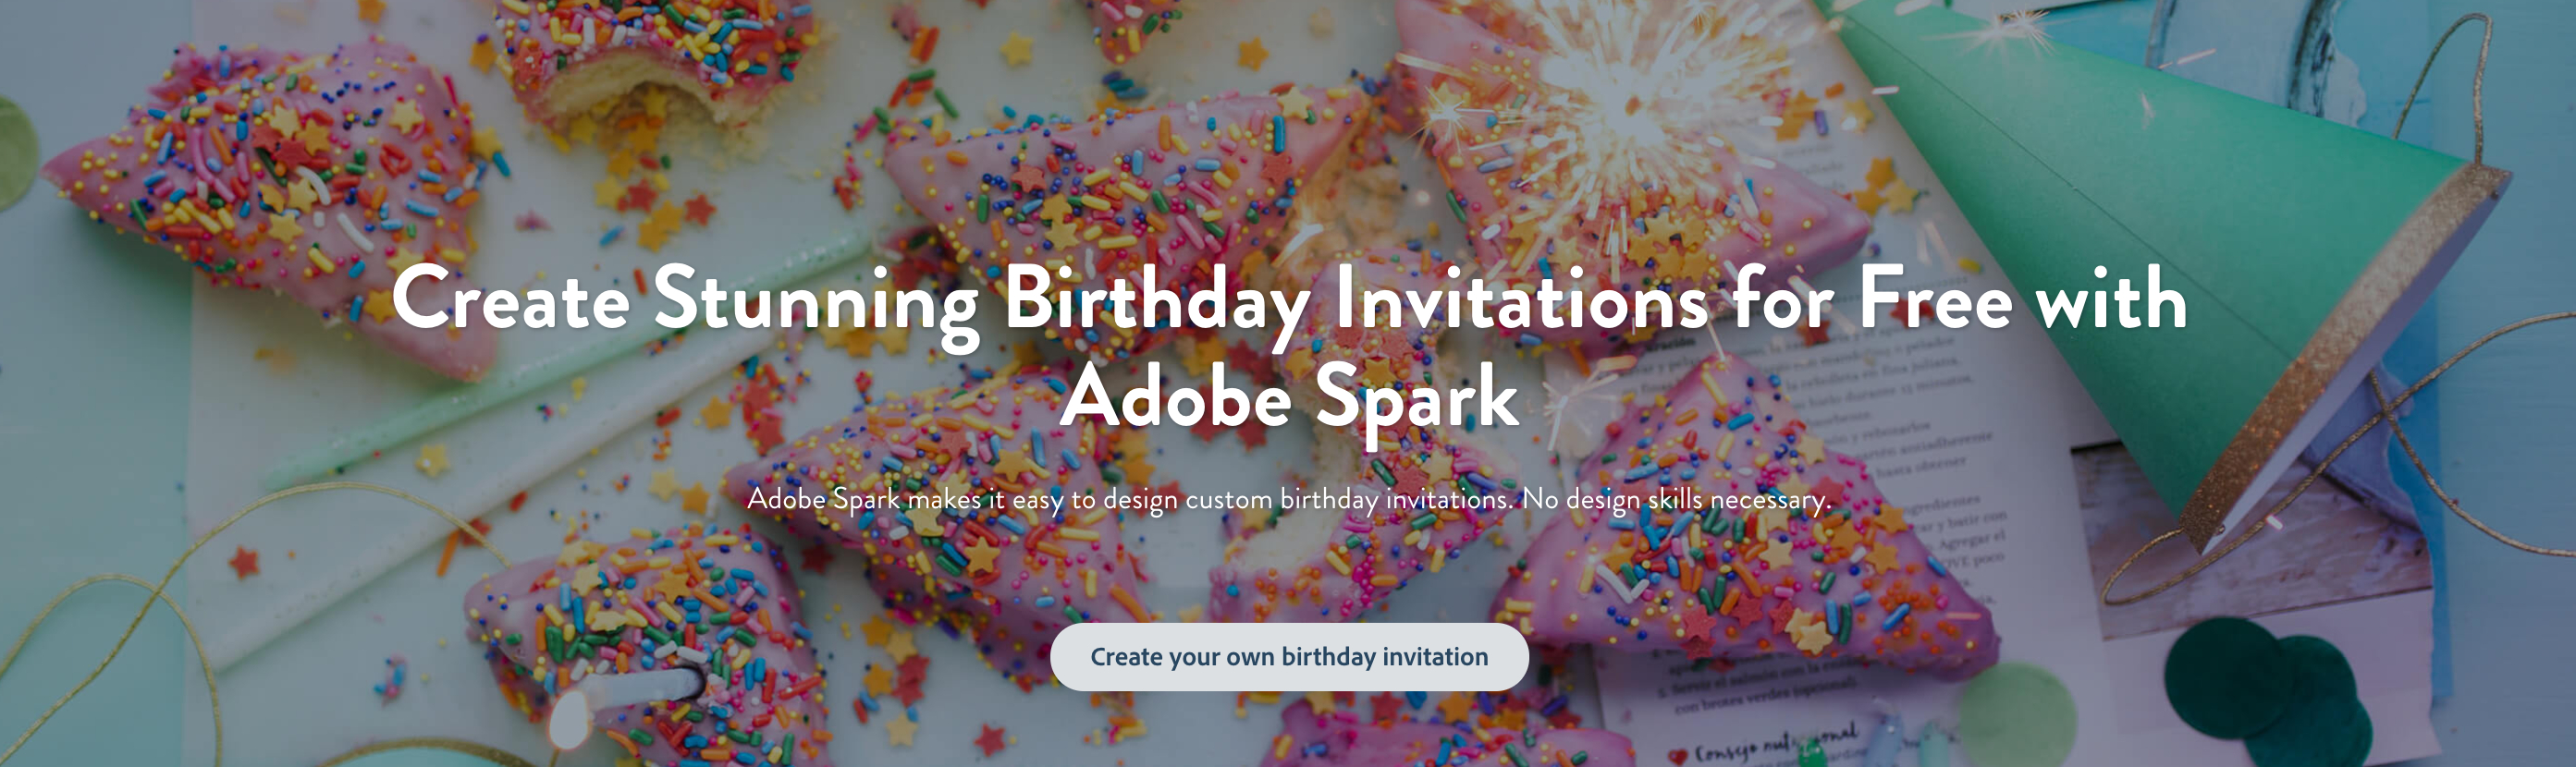 Make Your Own Birthday Invitations For Free | Adobe Spark - Make Your Own Birthday Party Invitations Free Printable